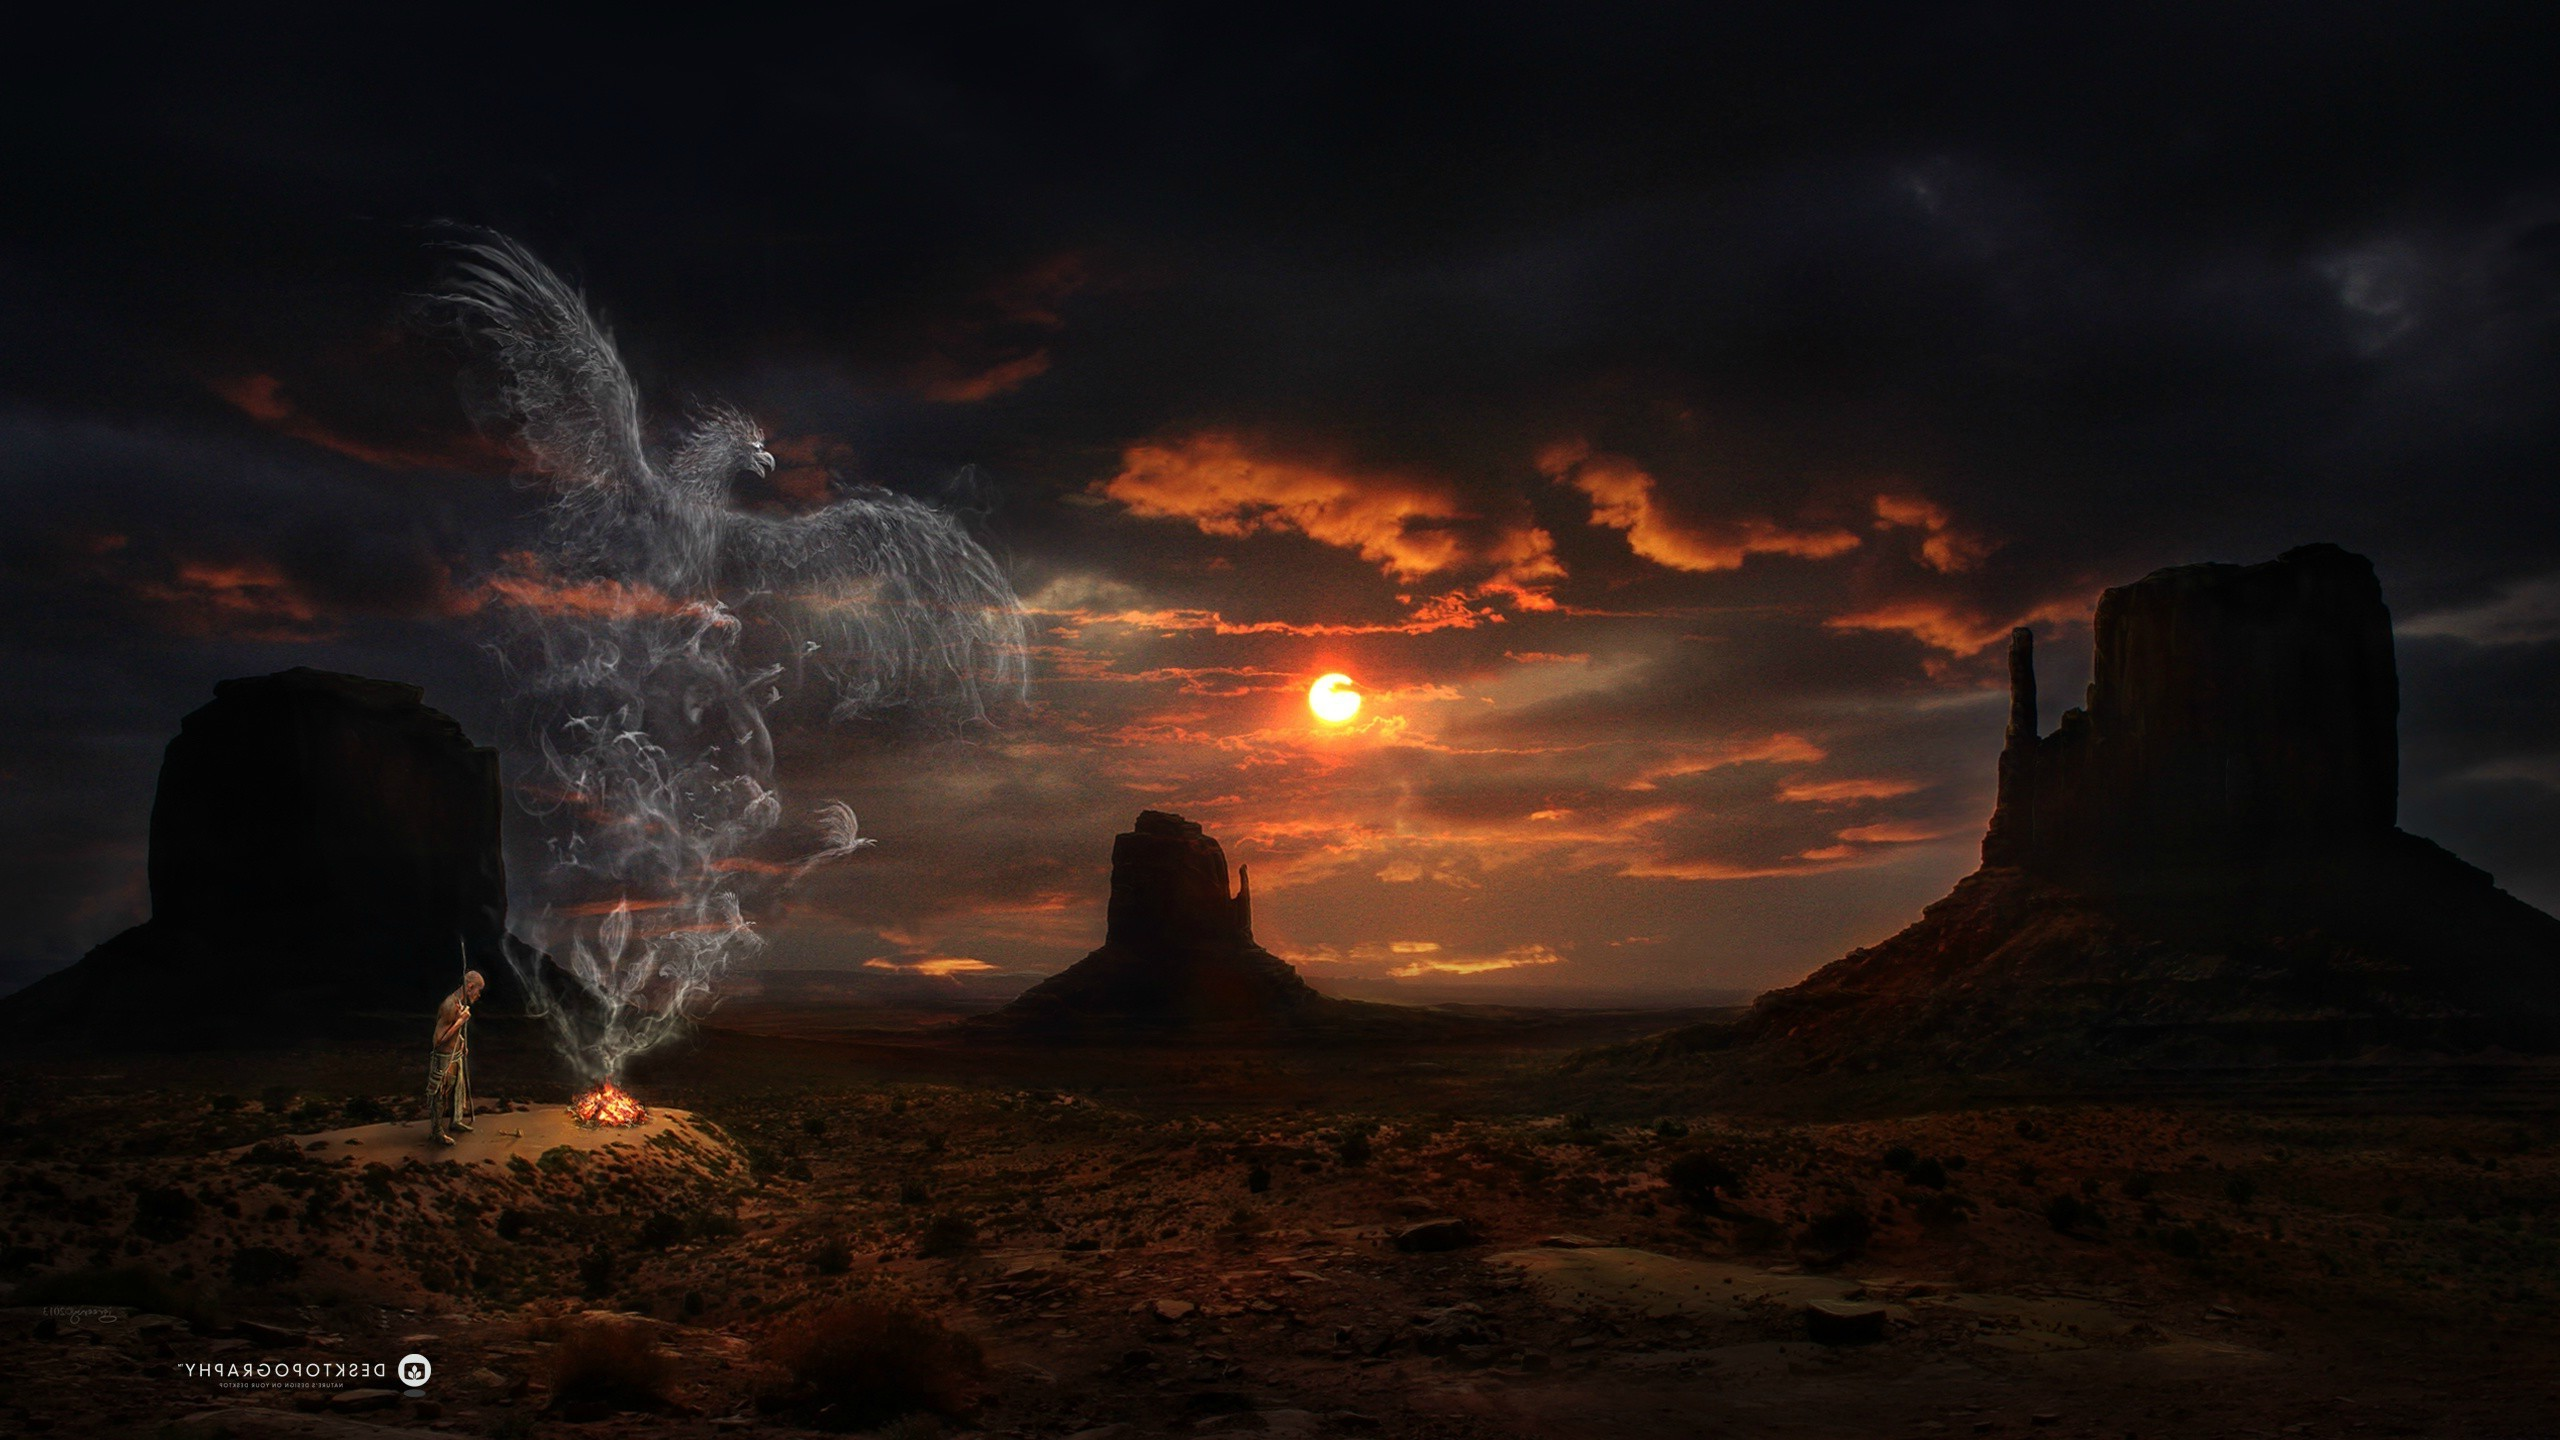 Res: 2560x1440, Desktopography, Sunset, Mountain, Western, Eagle, Digital Art, Clouds Wallpapers  HD / Desktop and Mobile Backgrounds